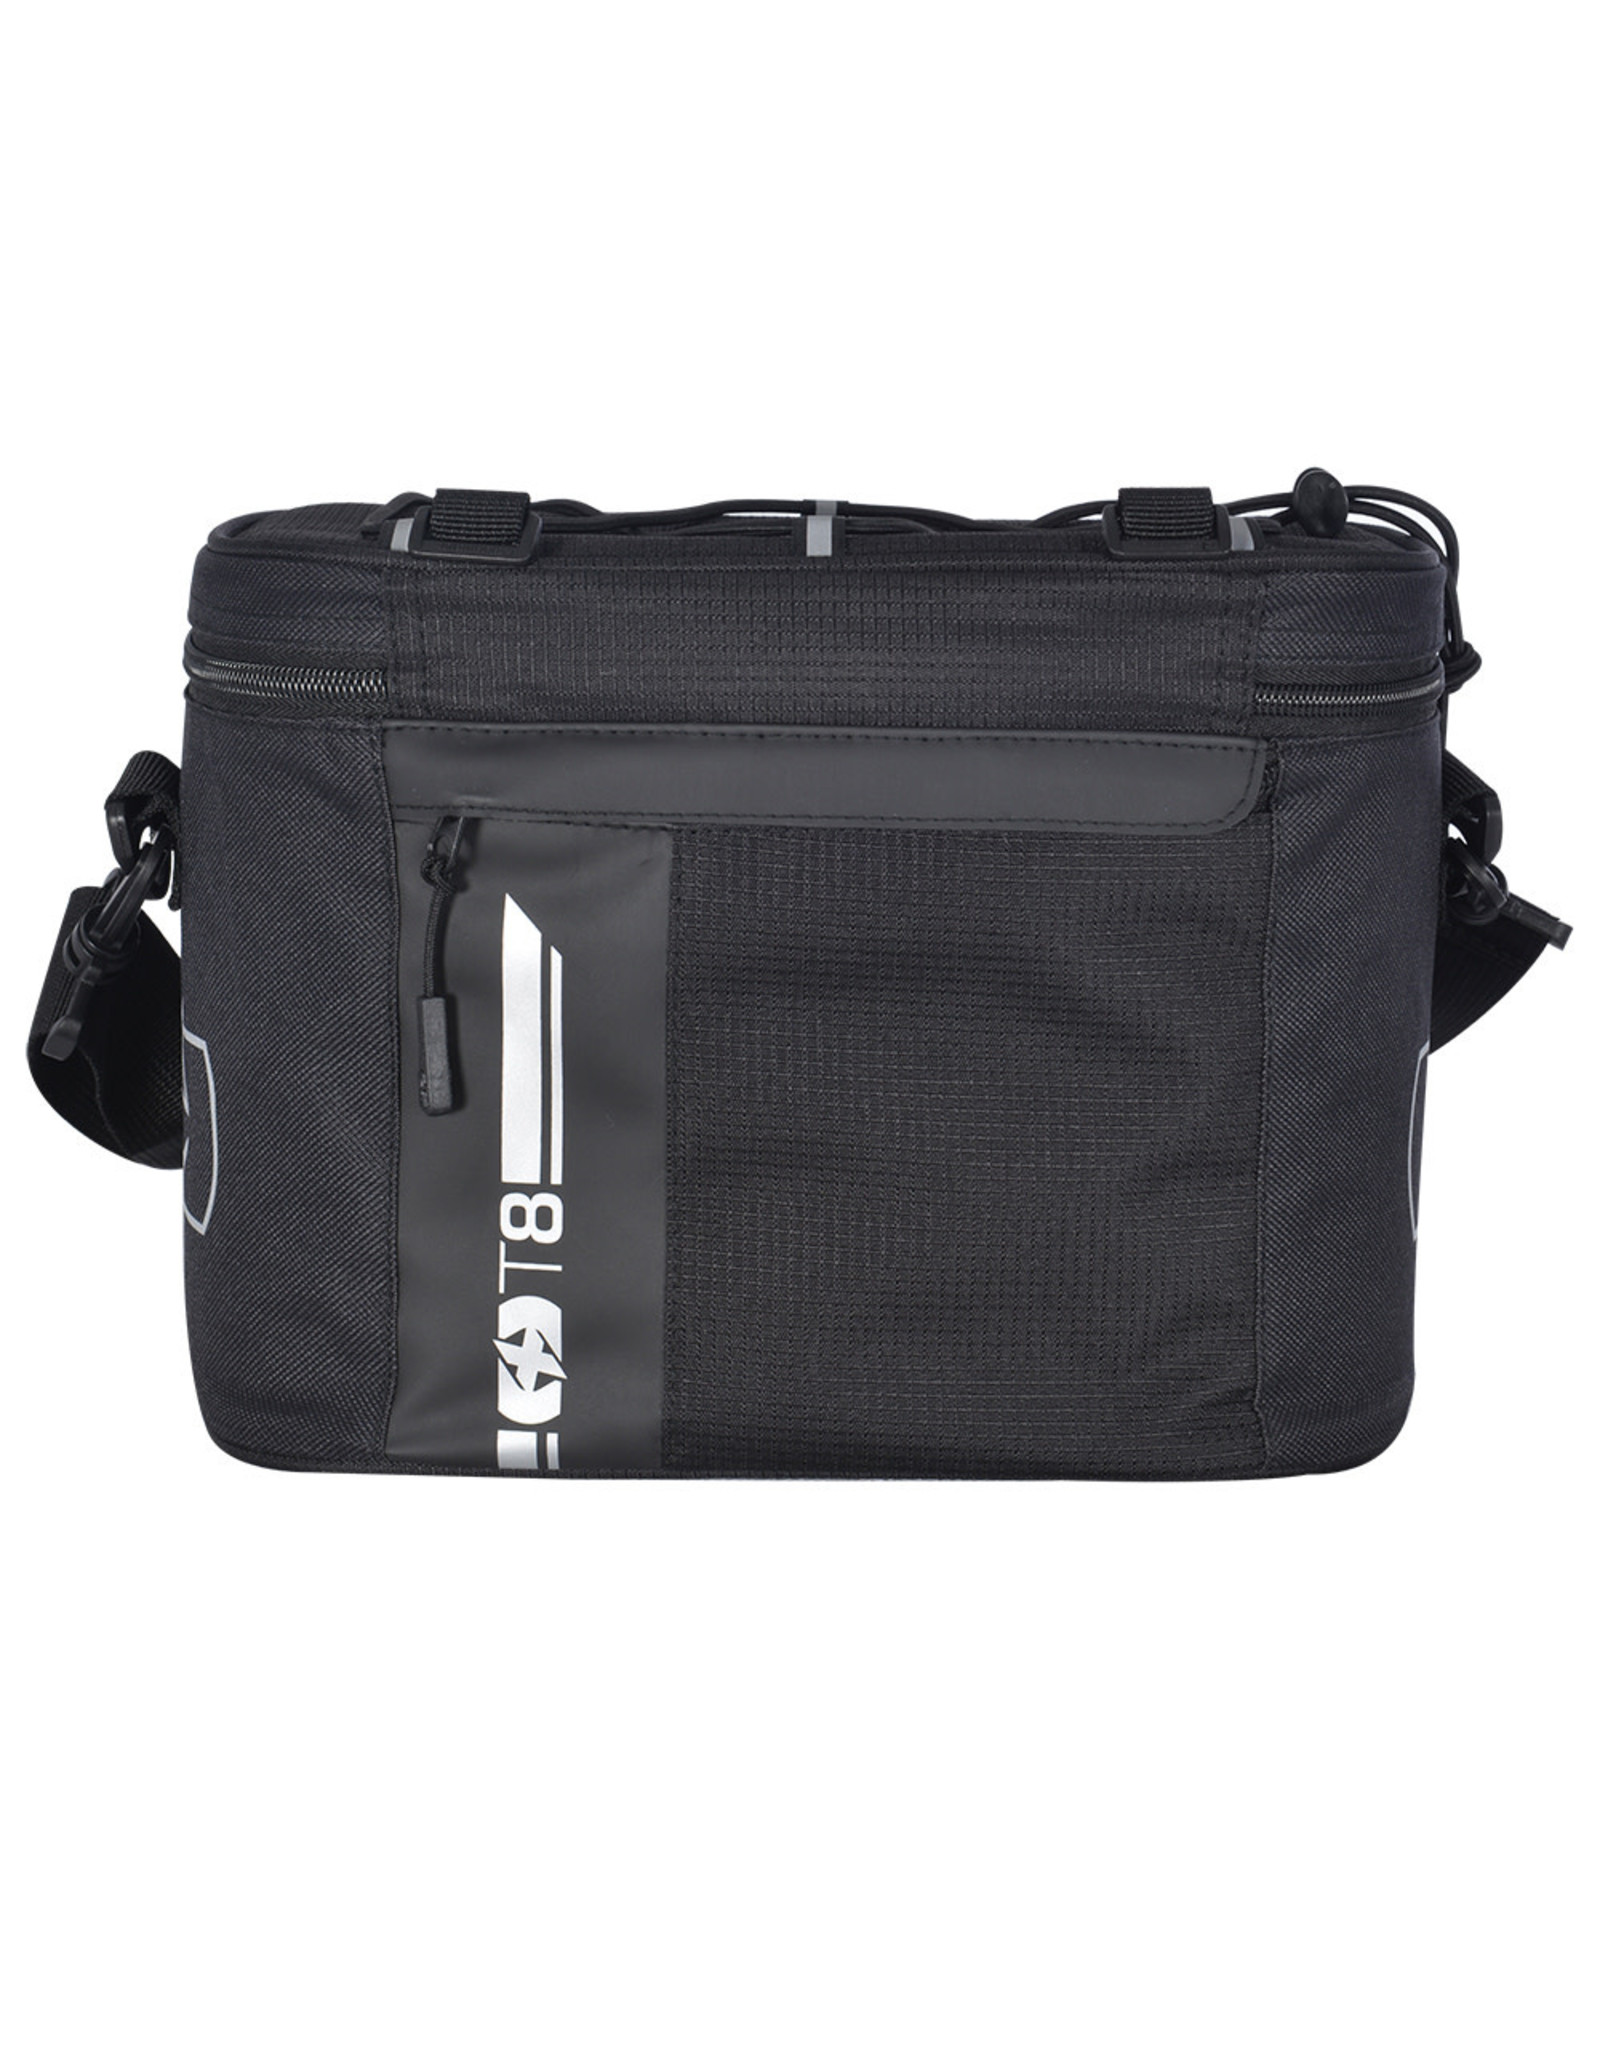 Oxford T8 Handlebar Bag 8L